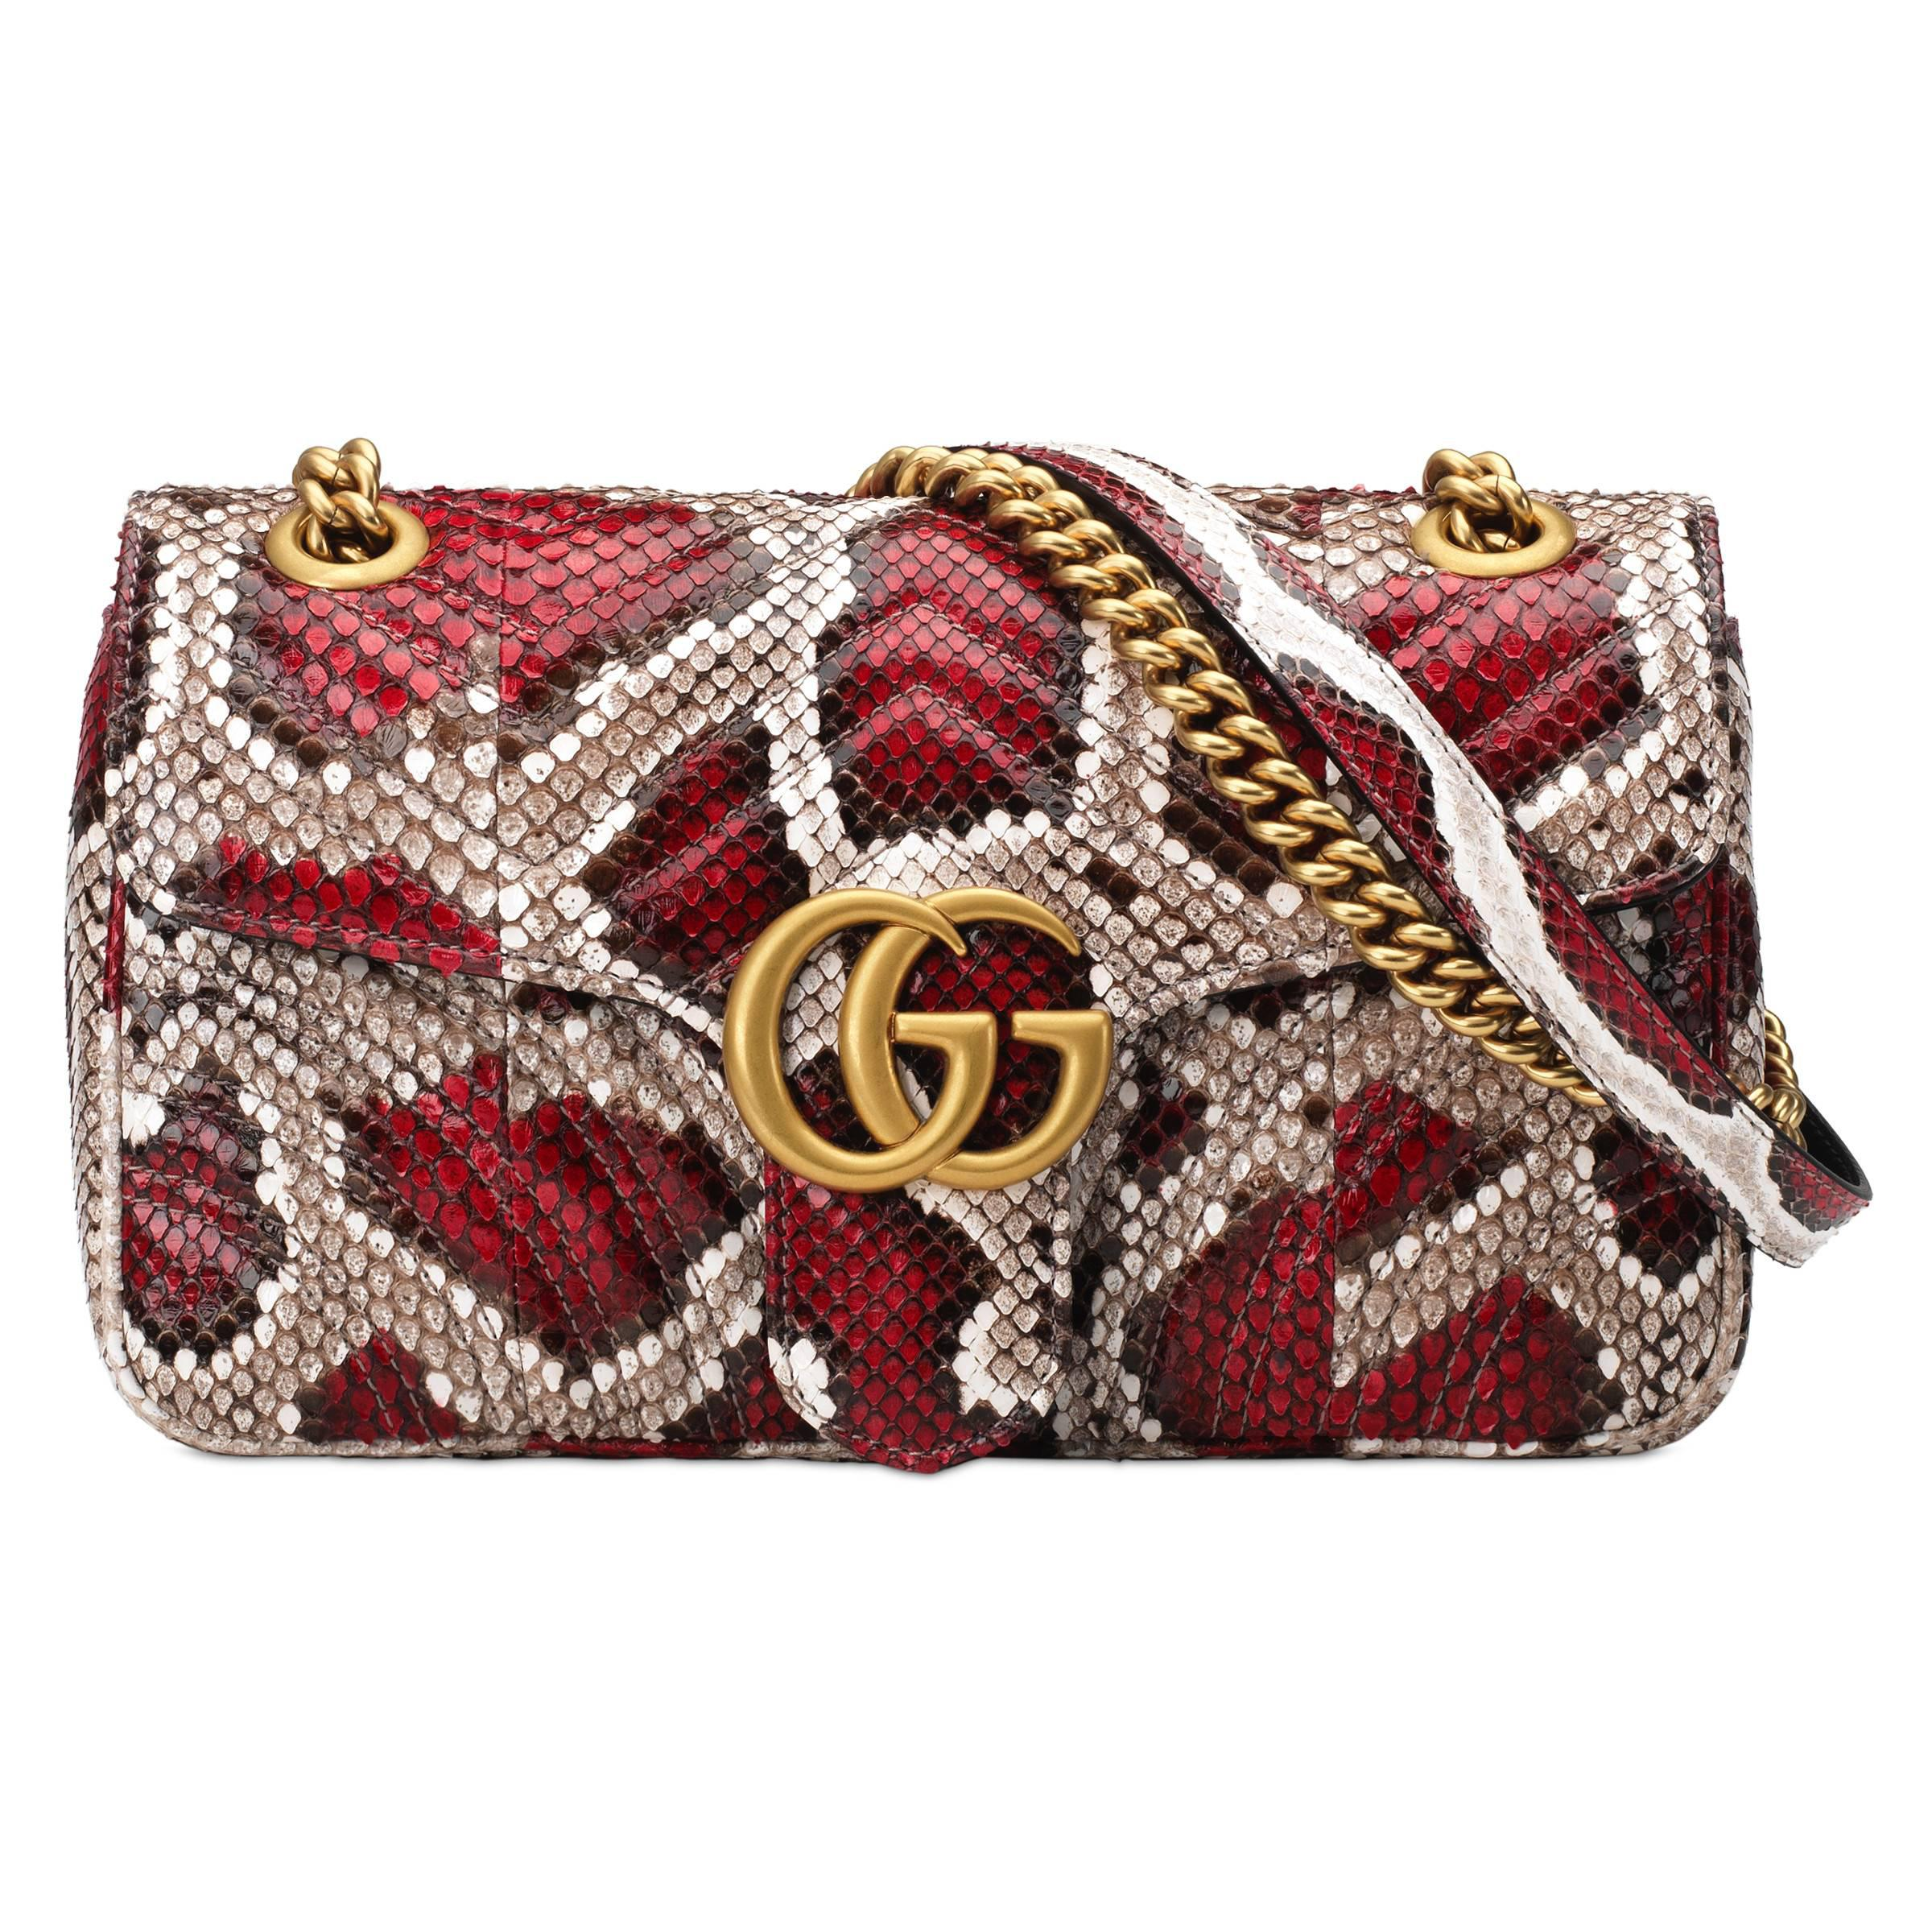 ee96bc305 Gucci - Red GG Marmont Small Python Shoulder Bag - Lyst. View fullscreen